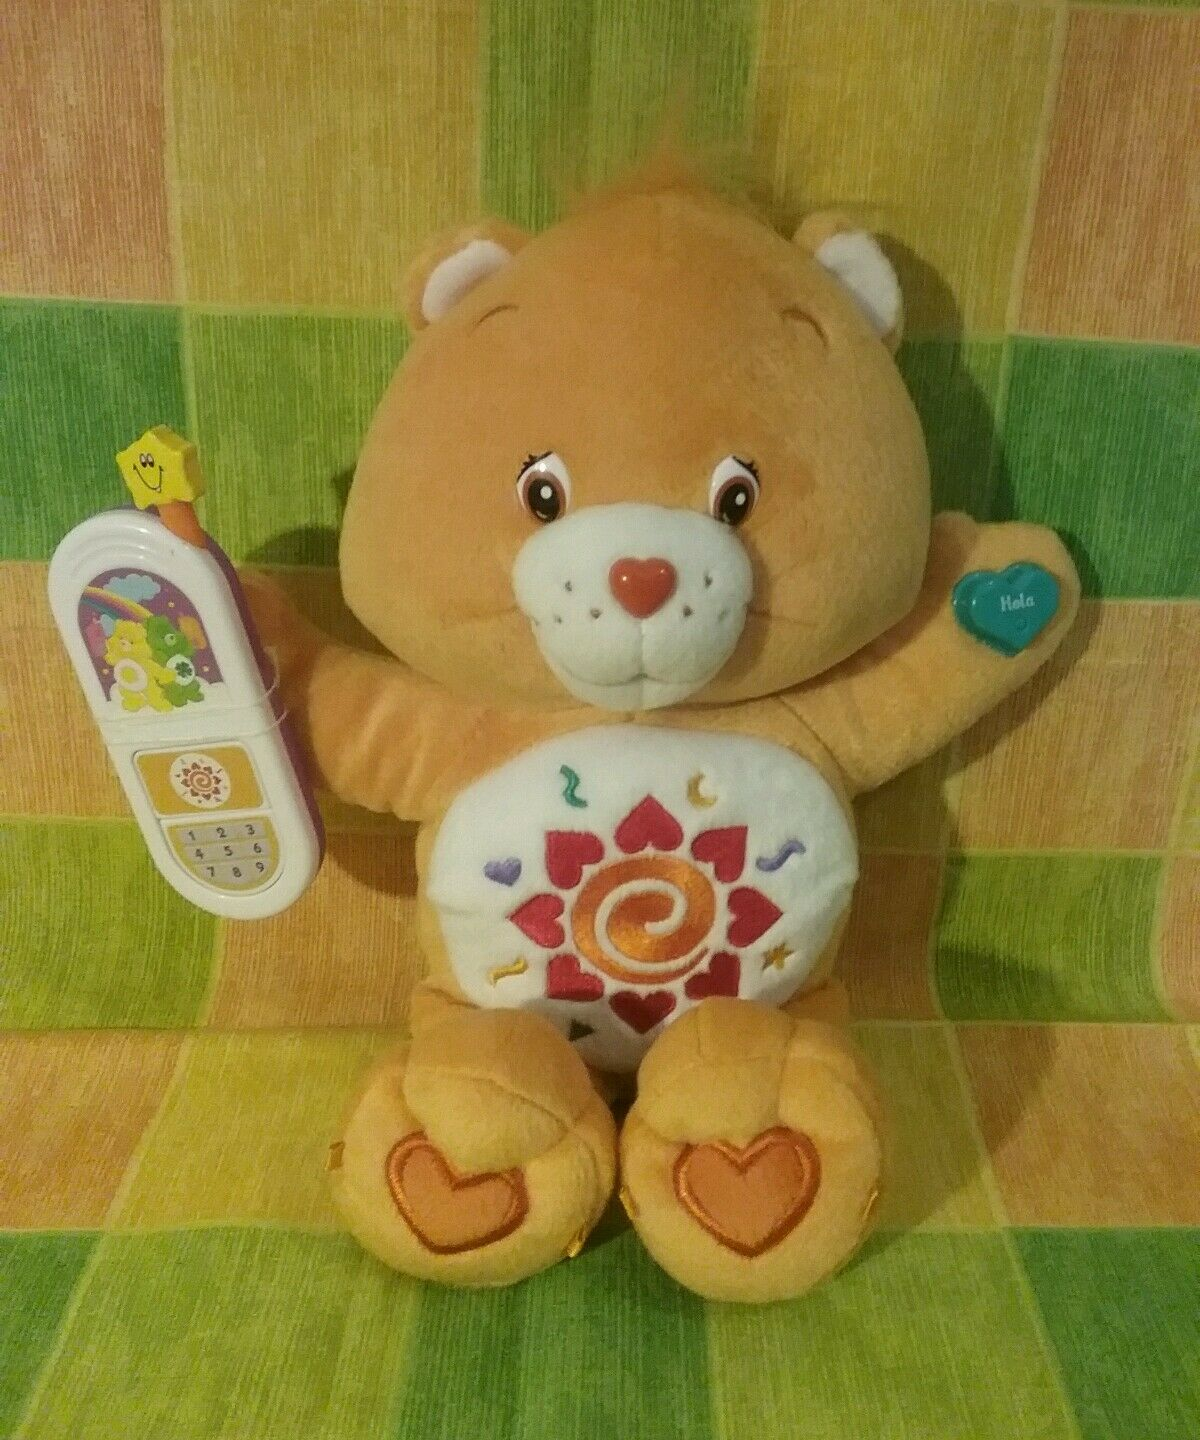 Talk n Learn 2005 Bilingual Care bear Amigo Bear with phone